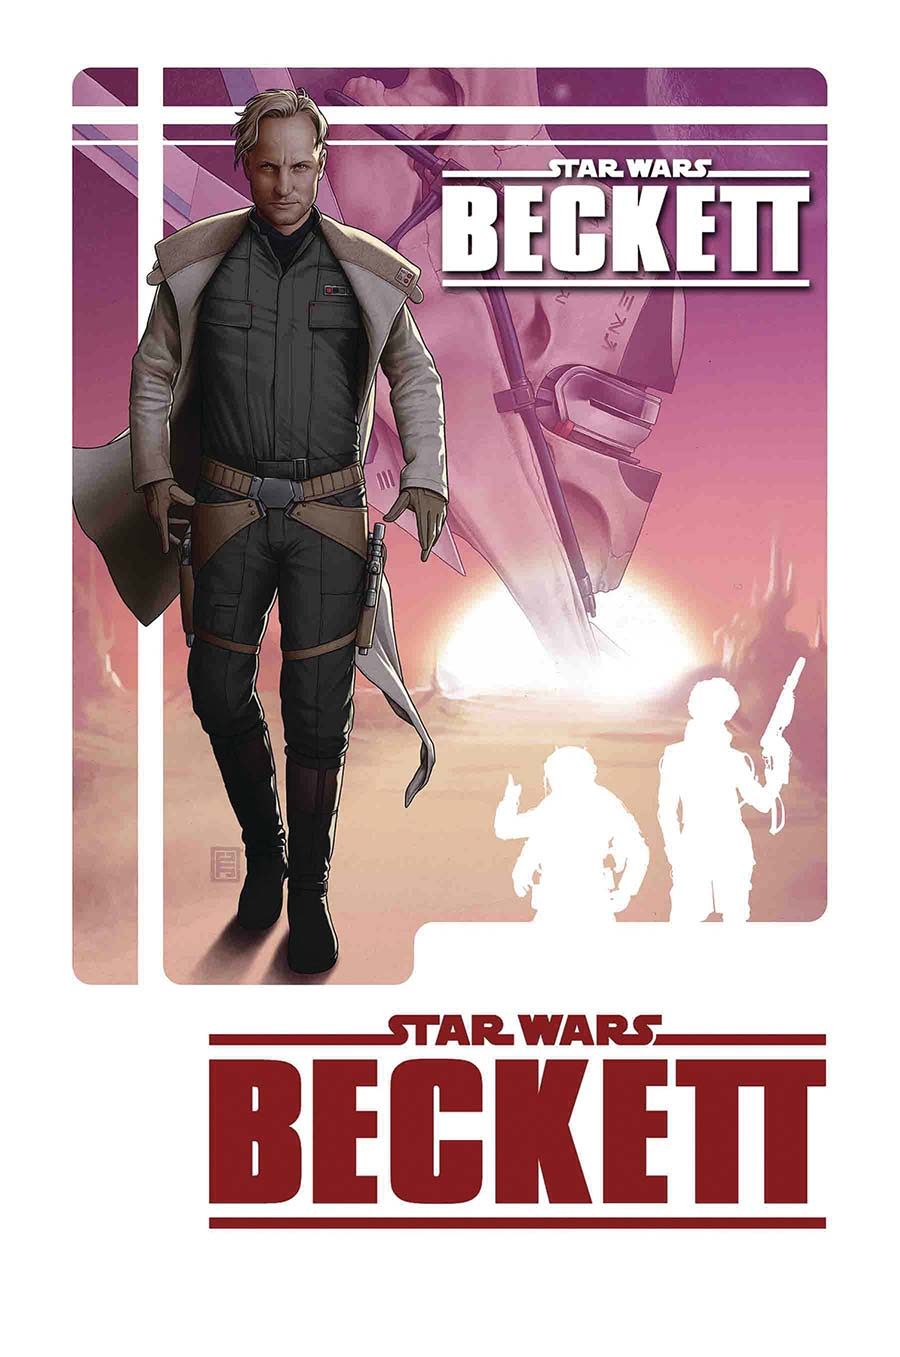 Star Wars: Beckett